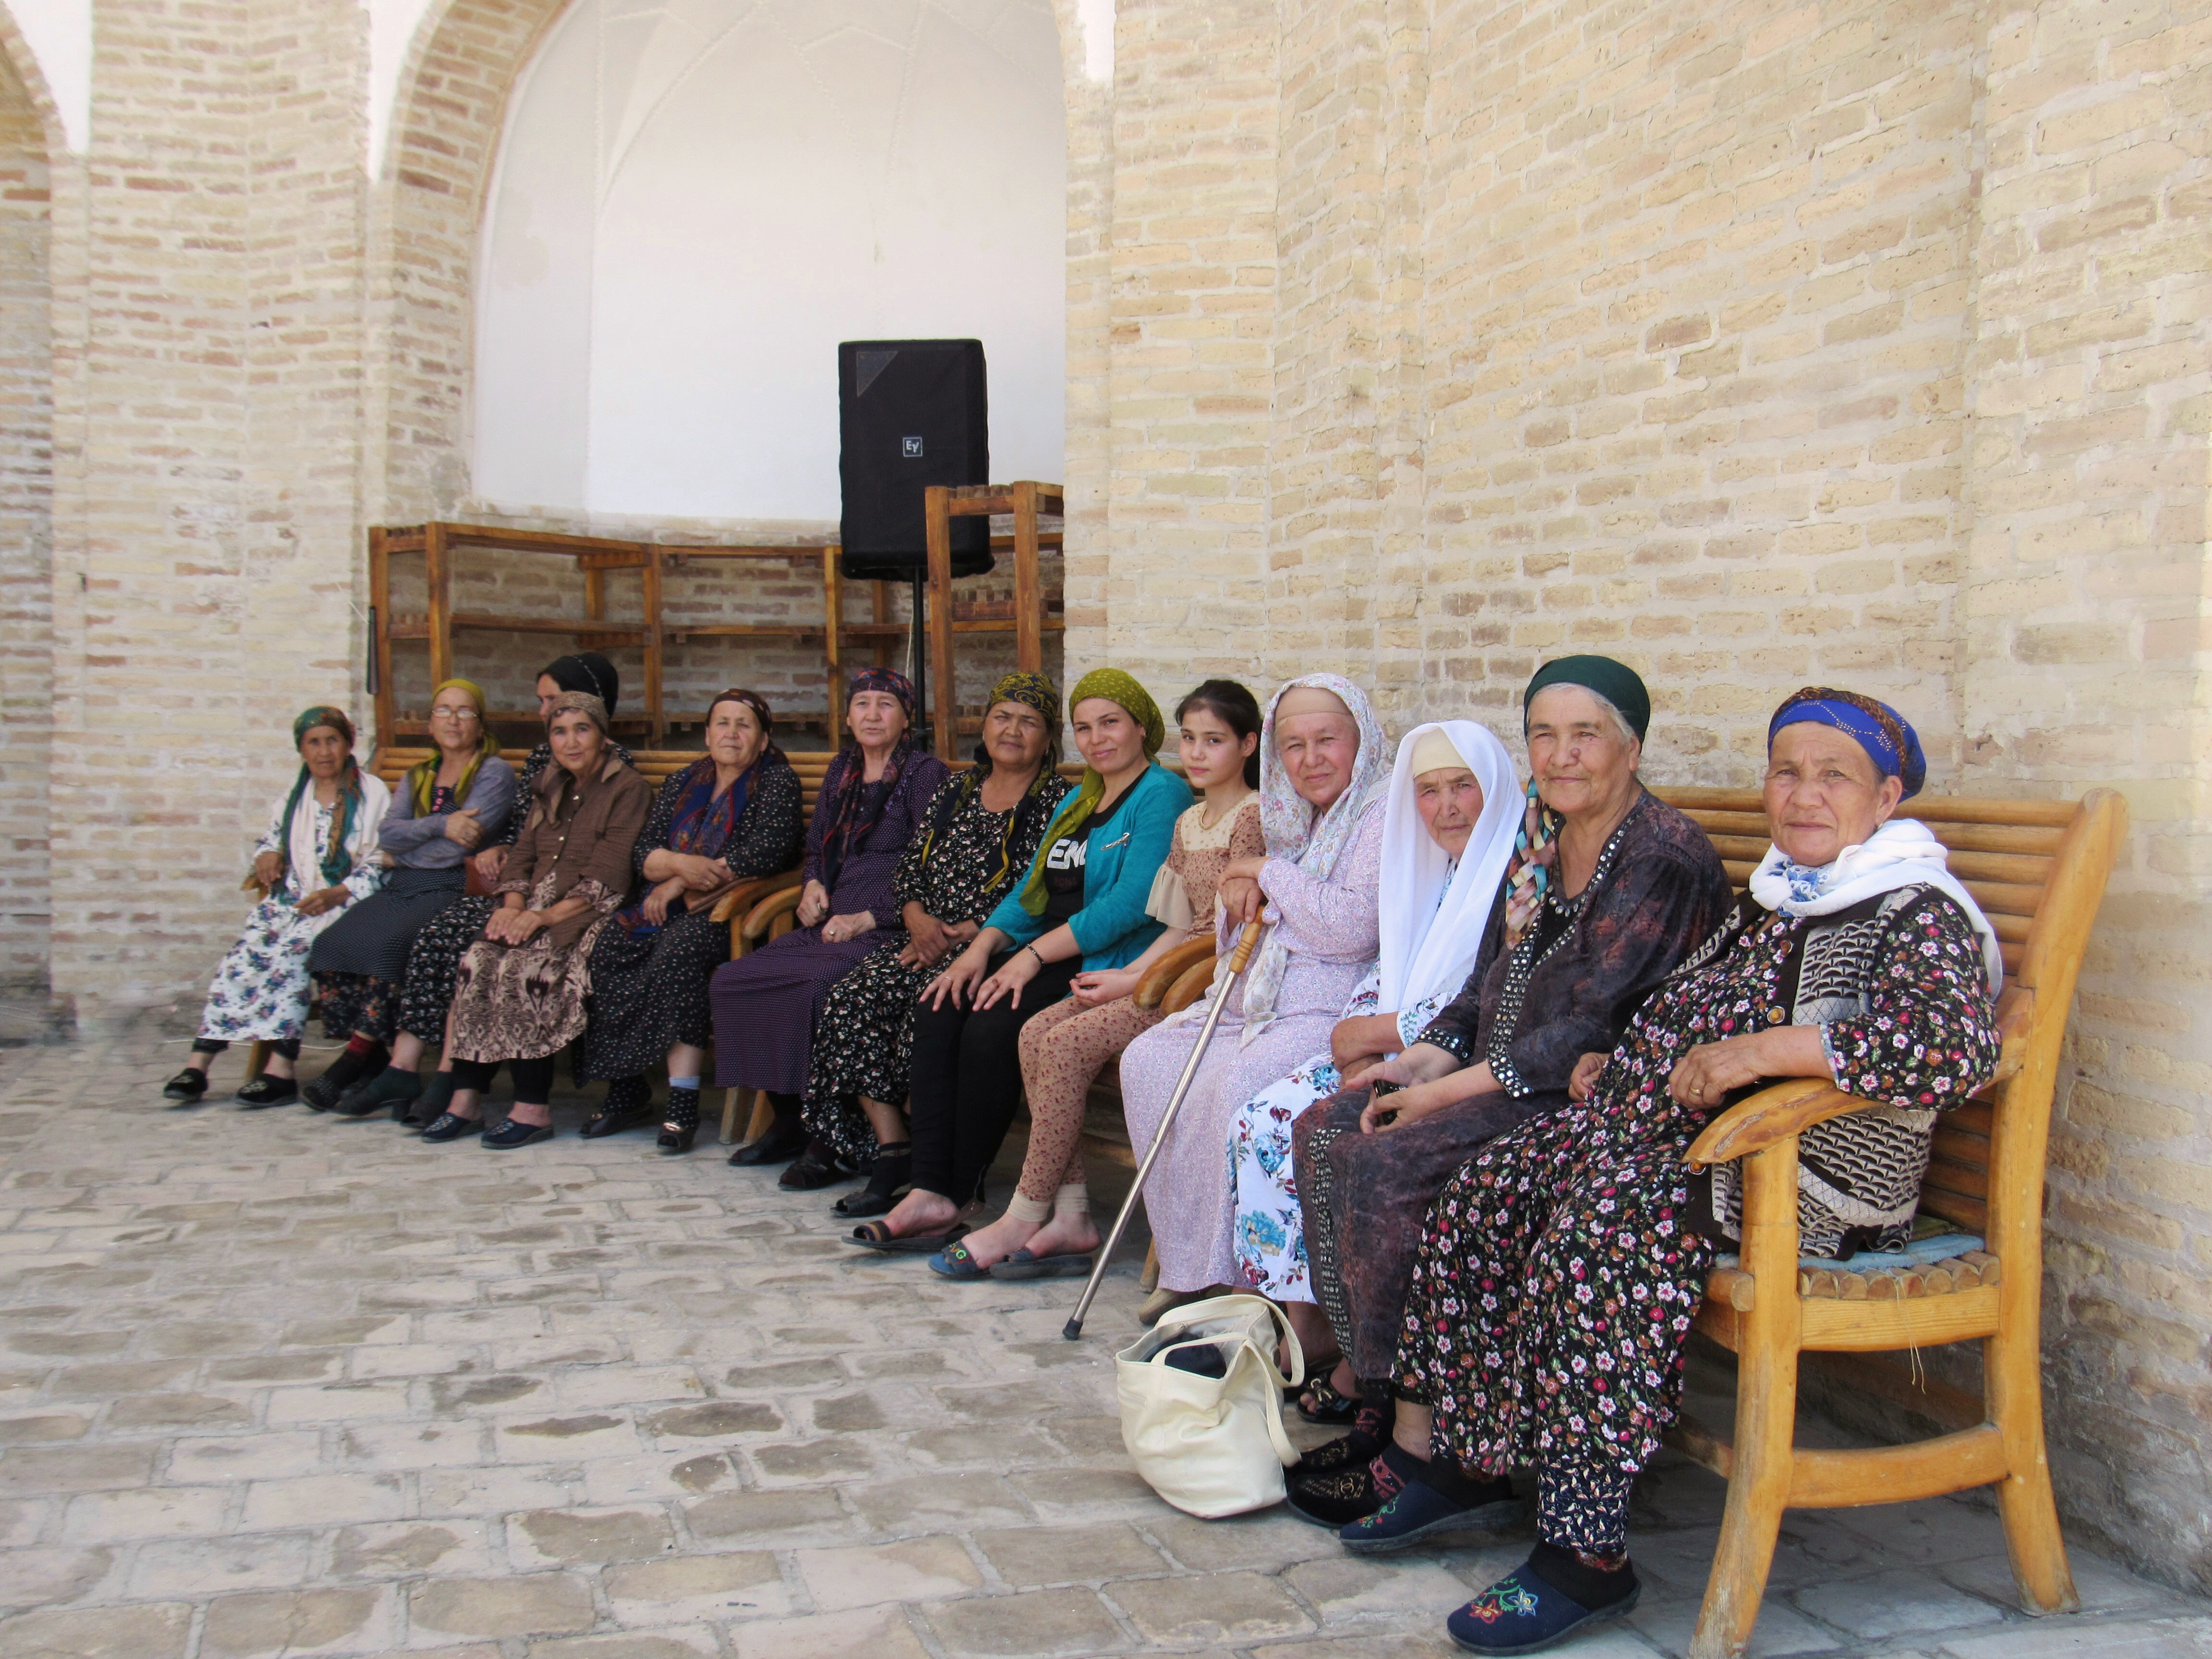 Pilgrims at the Memorial complex of Naqshbandi the revered 14th century Sufi teacher